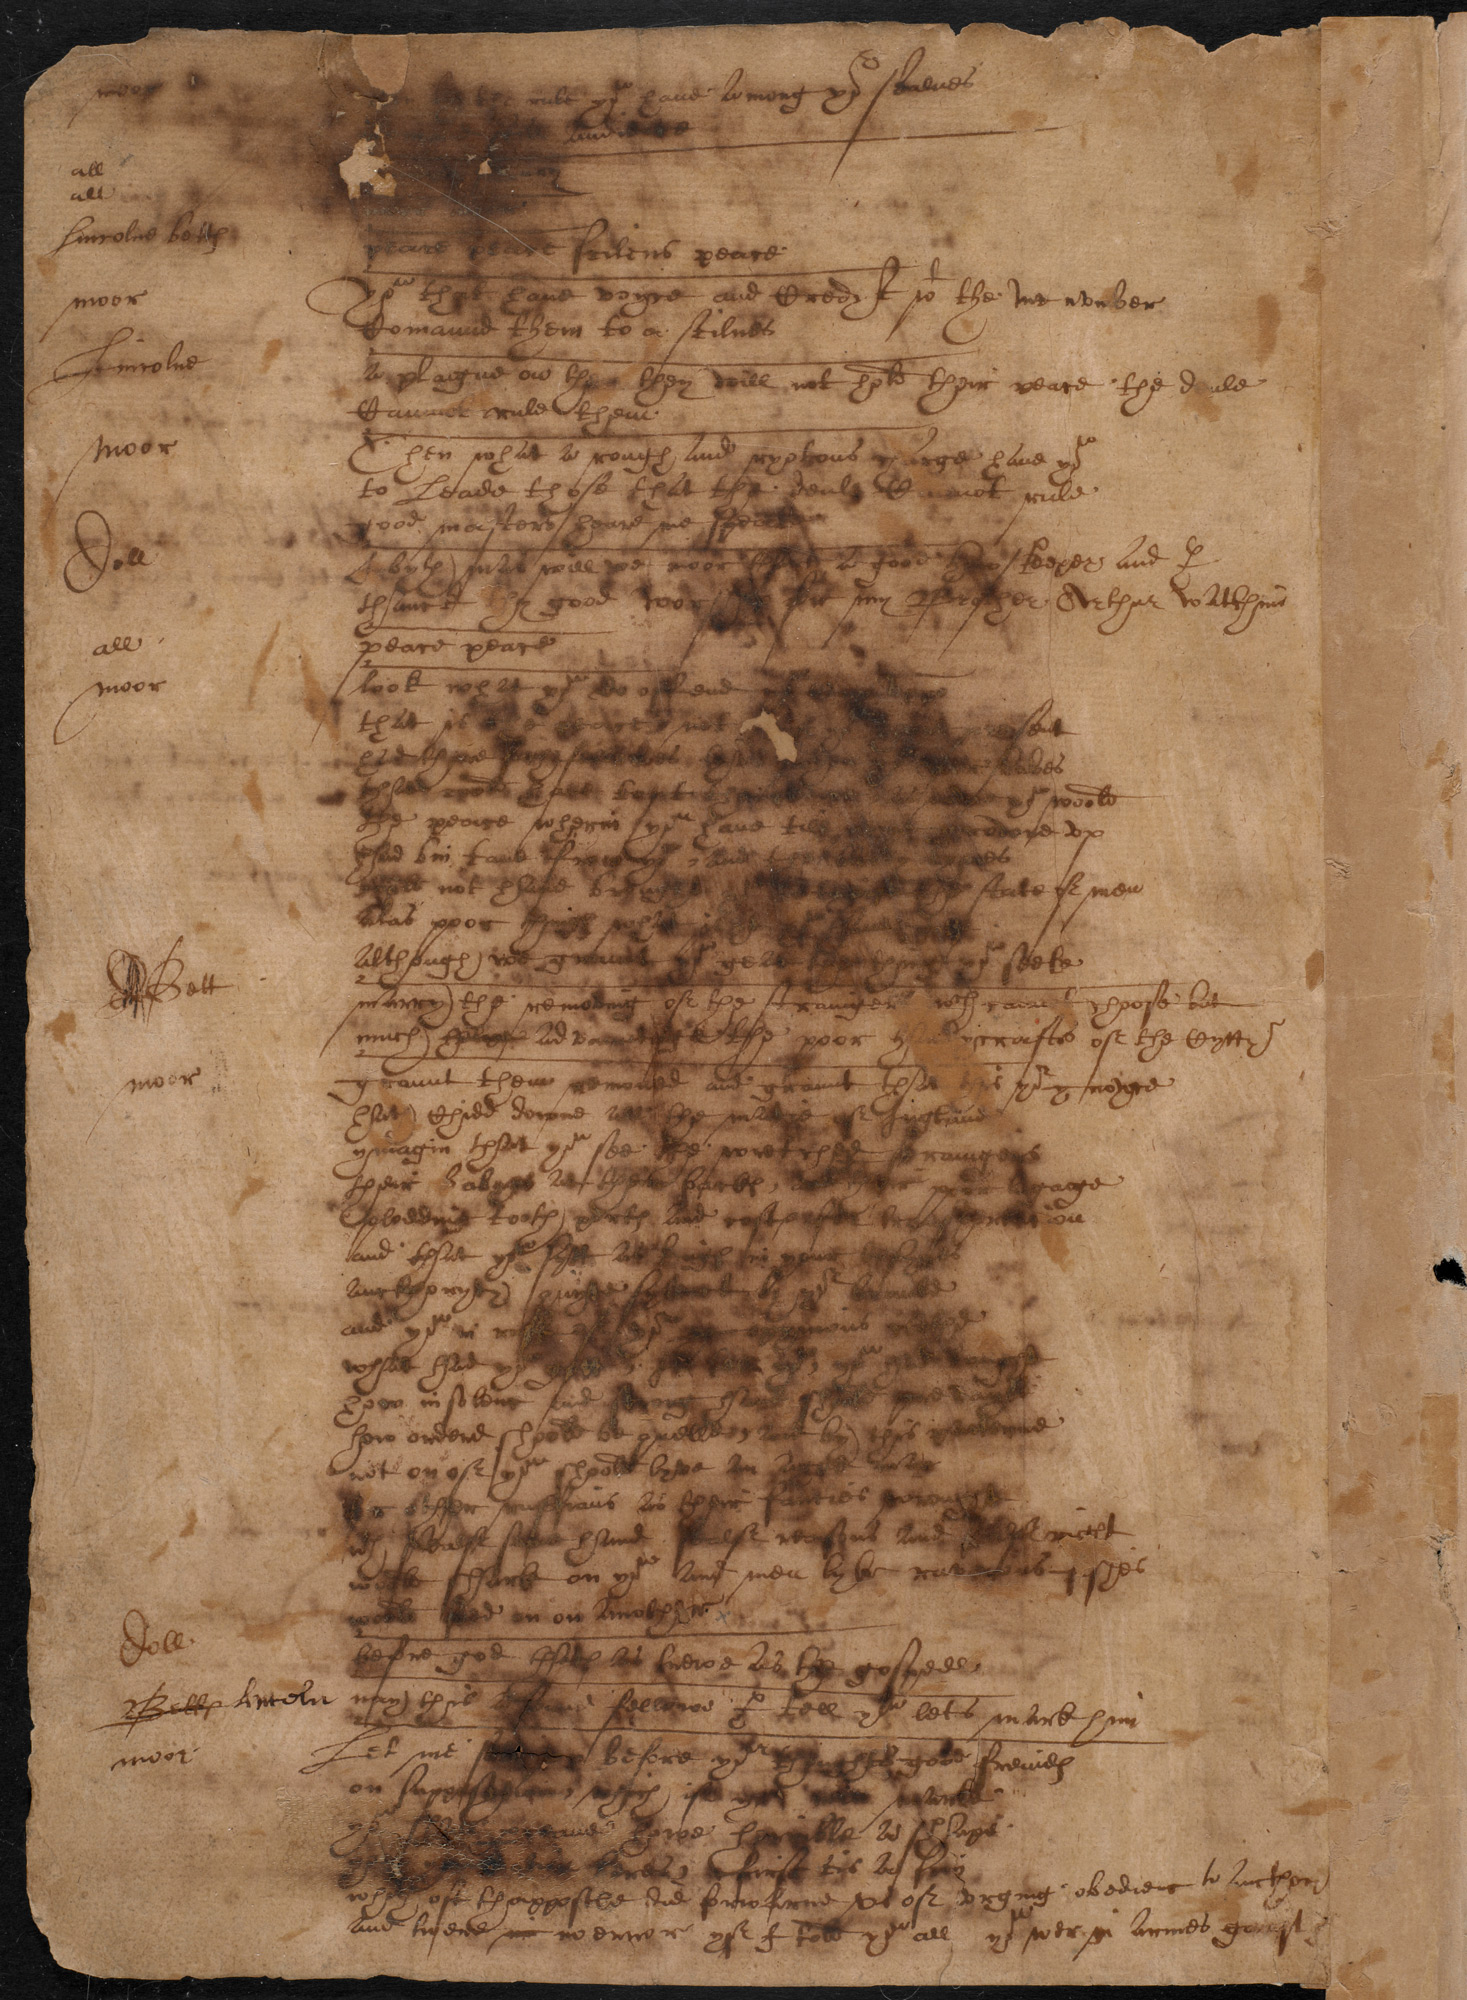 Shakespeare's handwriting in The Book of Sir Thomas More